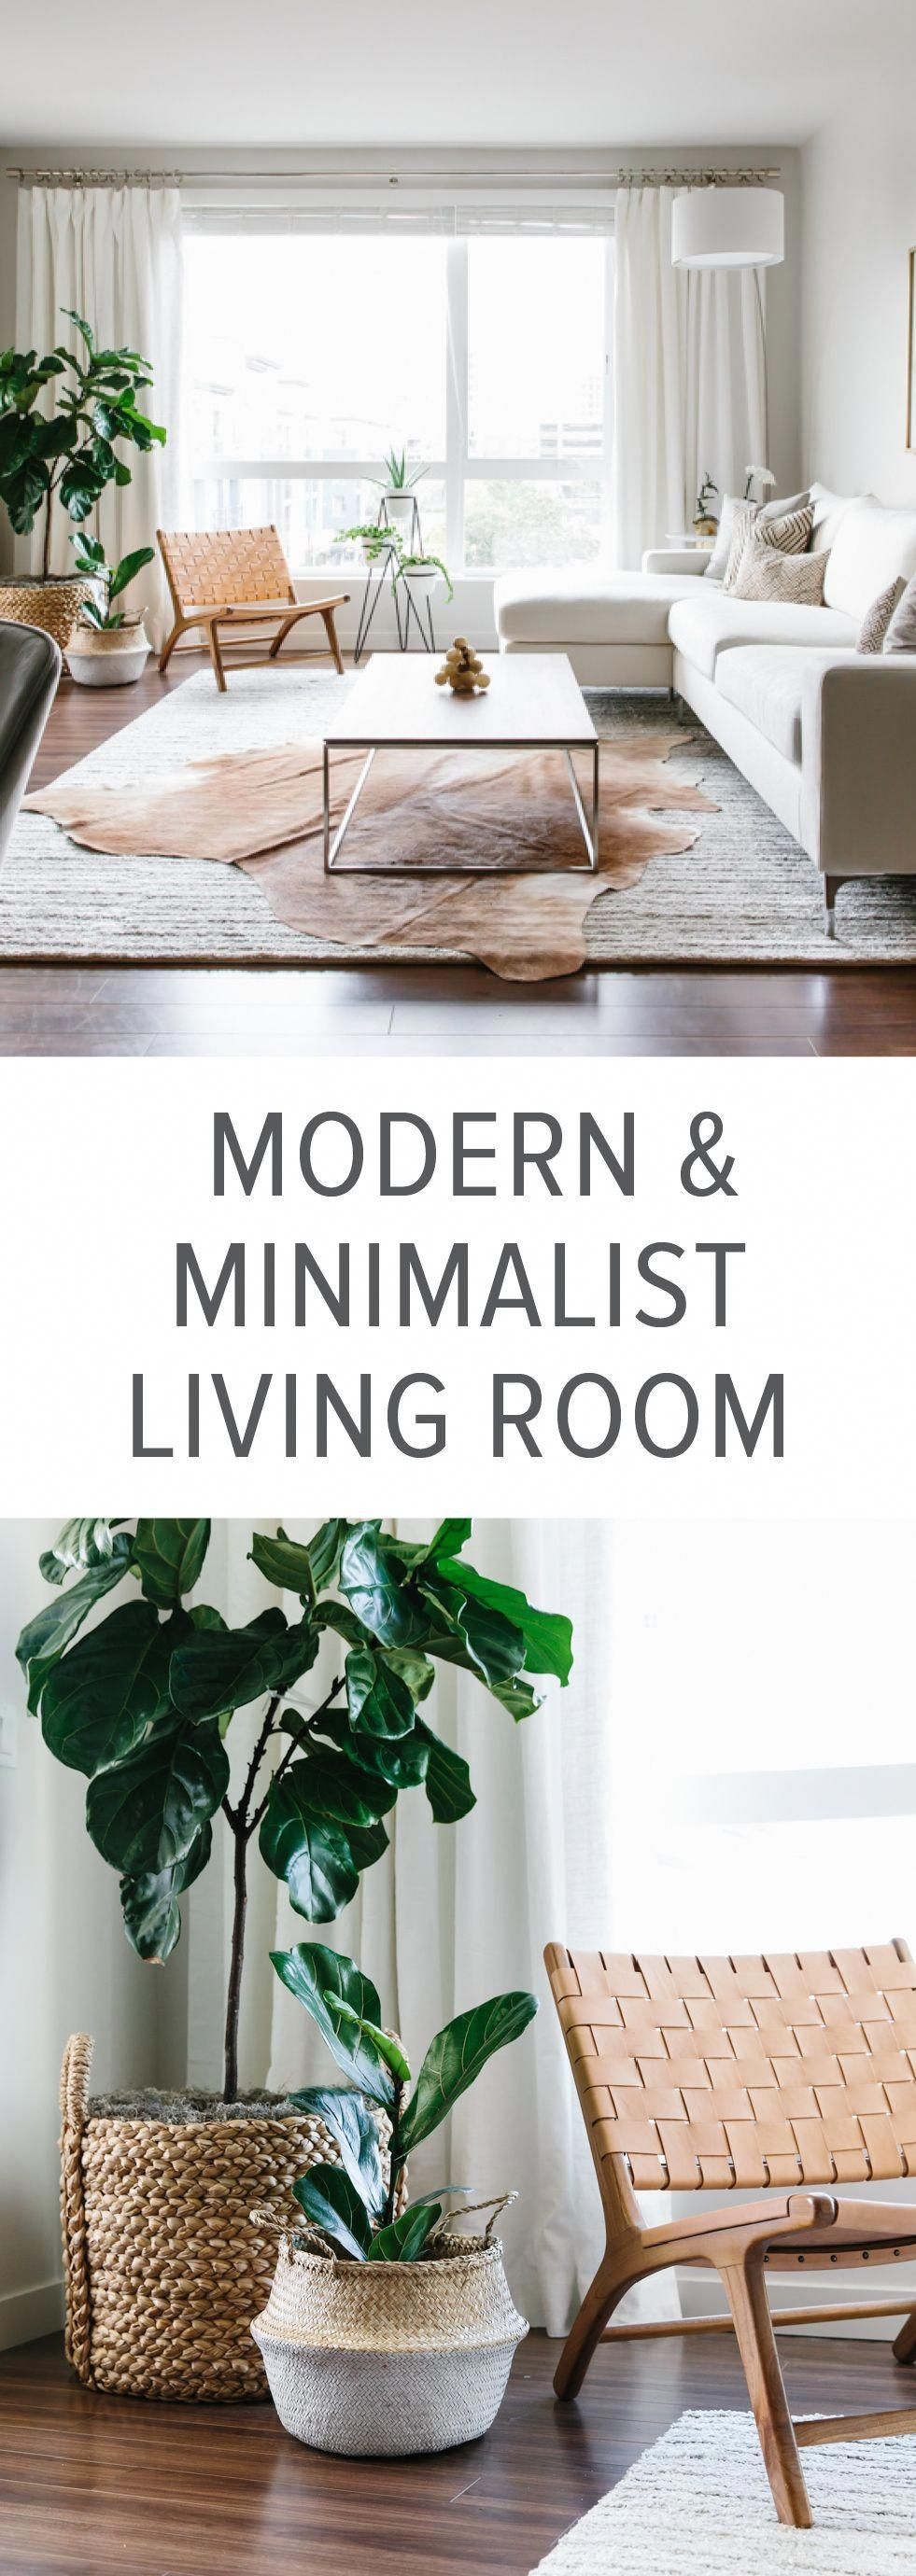 Designing my Modern and Minimalist Living Room with Havenly #minimalisthomedecor